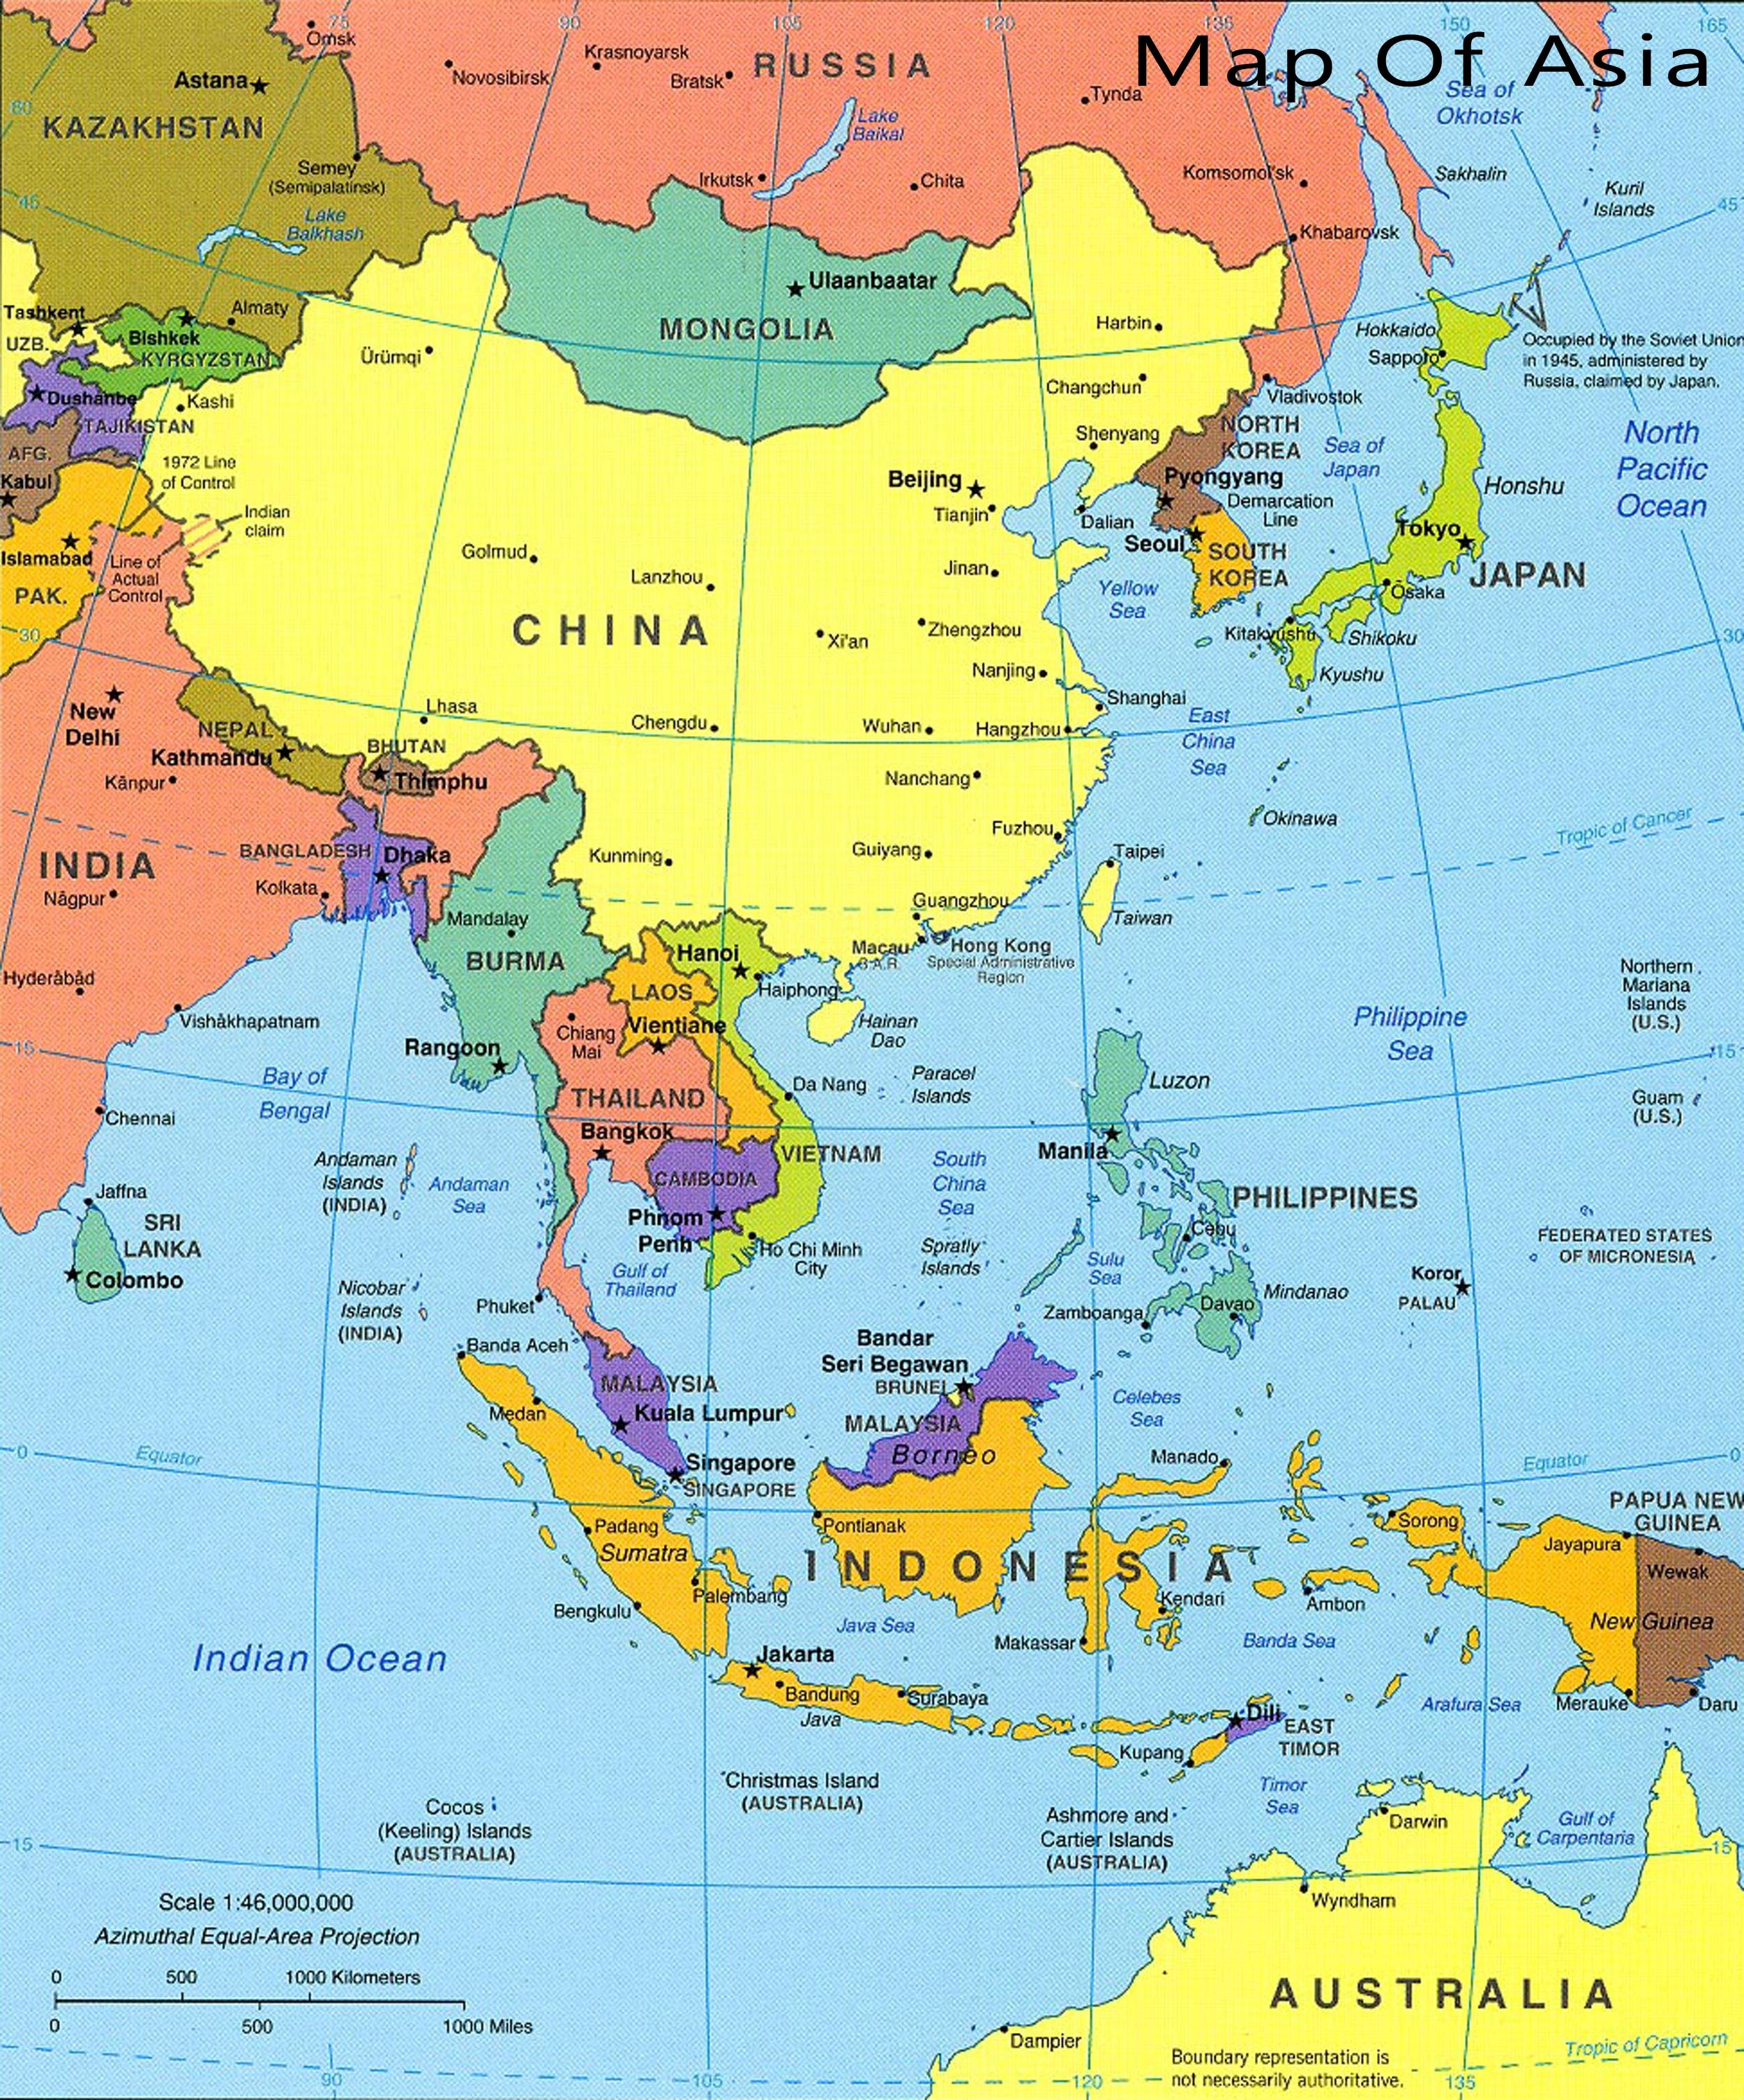 Map Of Asia To Print.Maps Of The World To Print And Download Chameleon Web Services